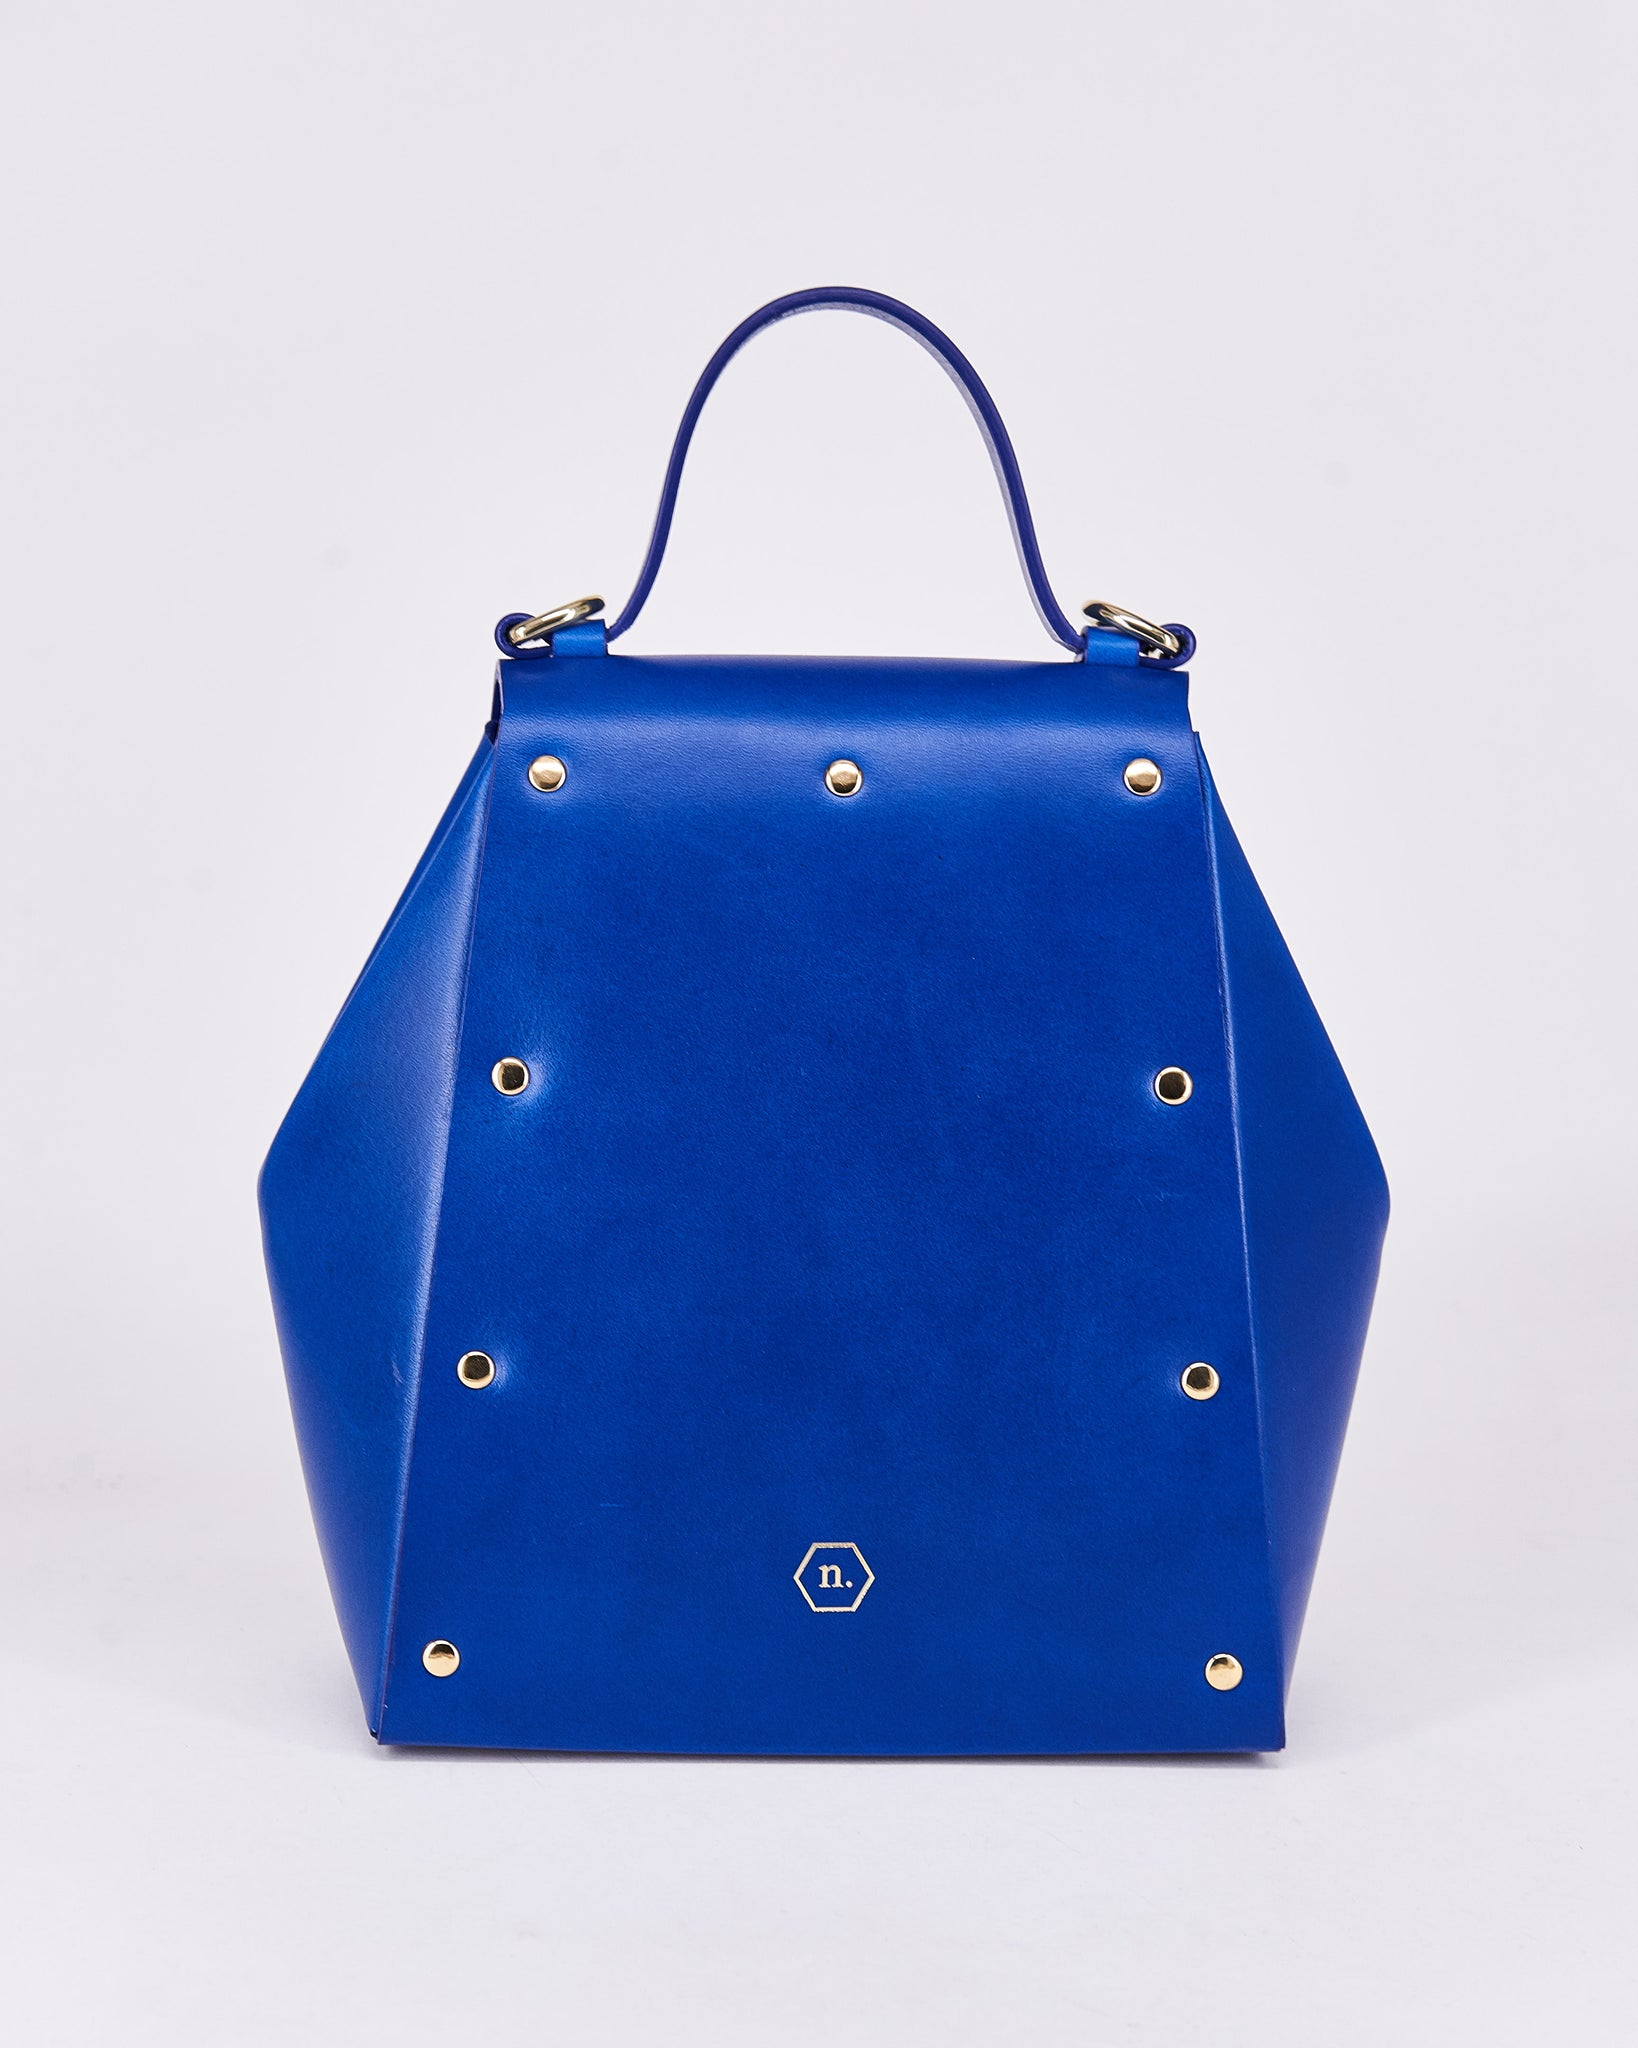 Hex Bag-Blue-Leather-Designed by Nuovum-Localdesigners-Barcelona_Back